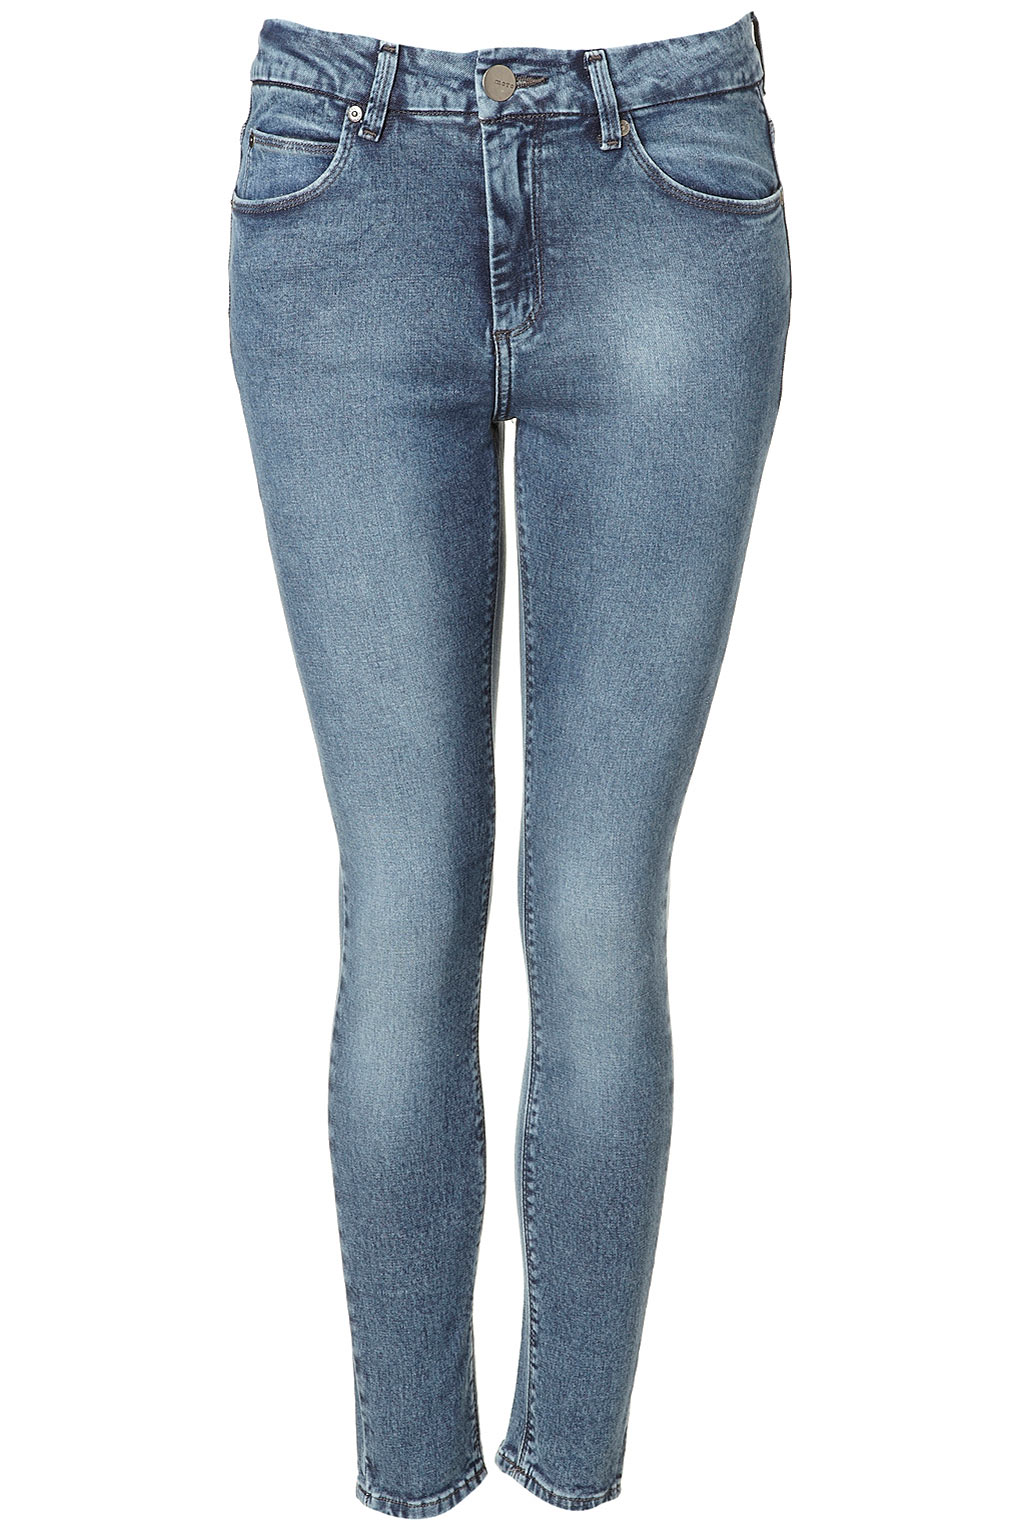 River Island Ankle Grazer Jeans